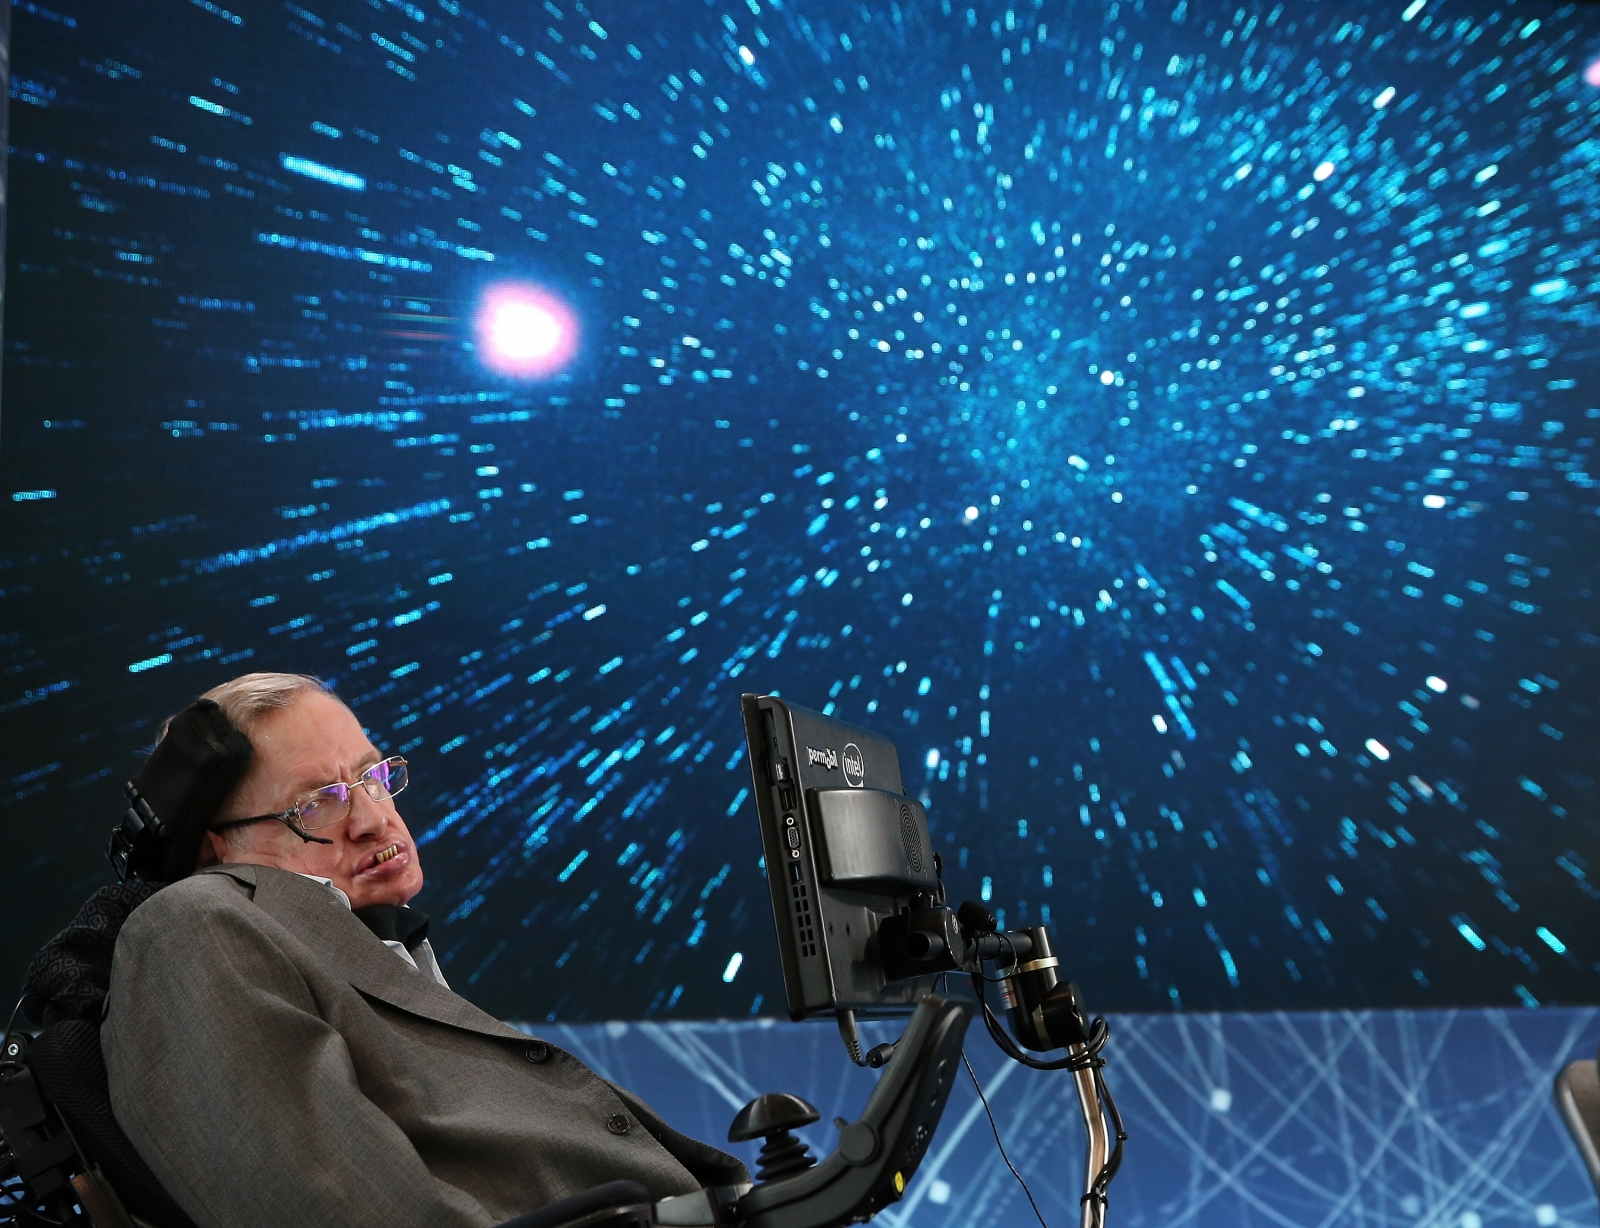 Stephen Hawking says we must leave Earth within 100 years